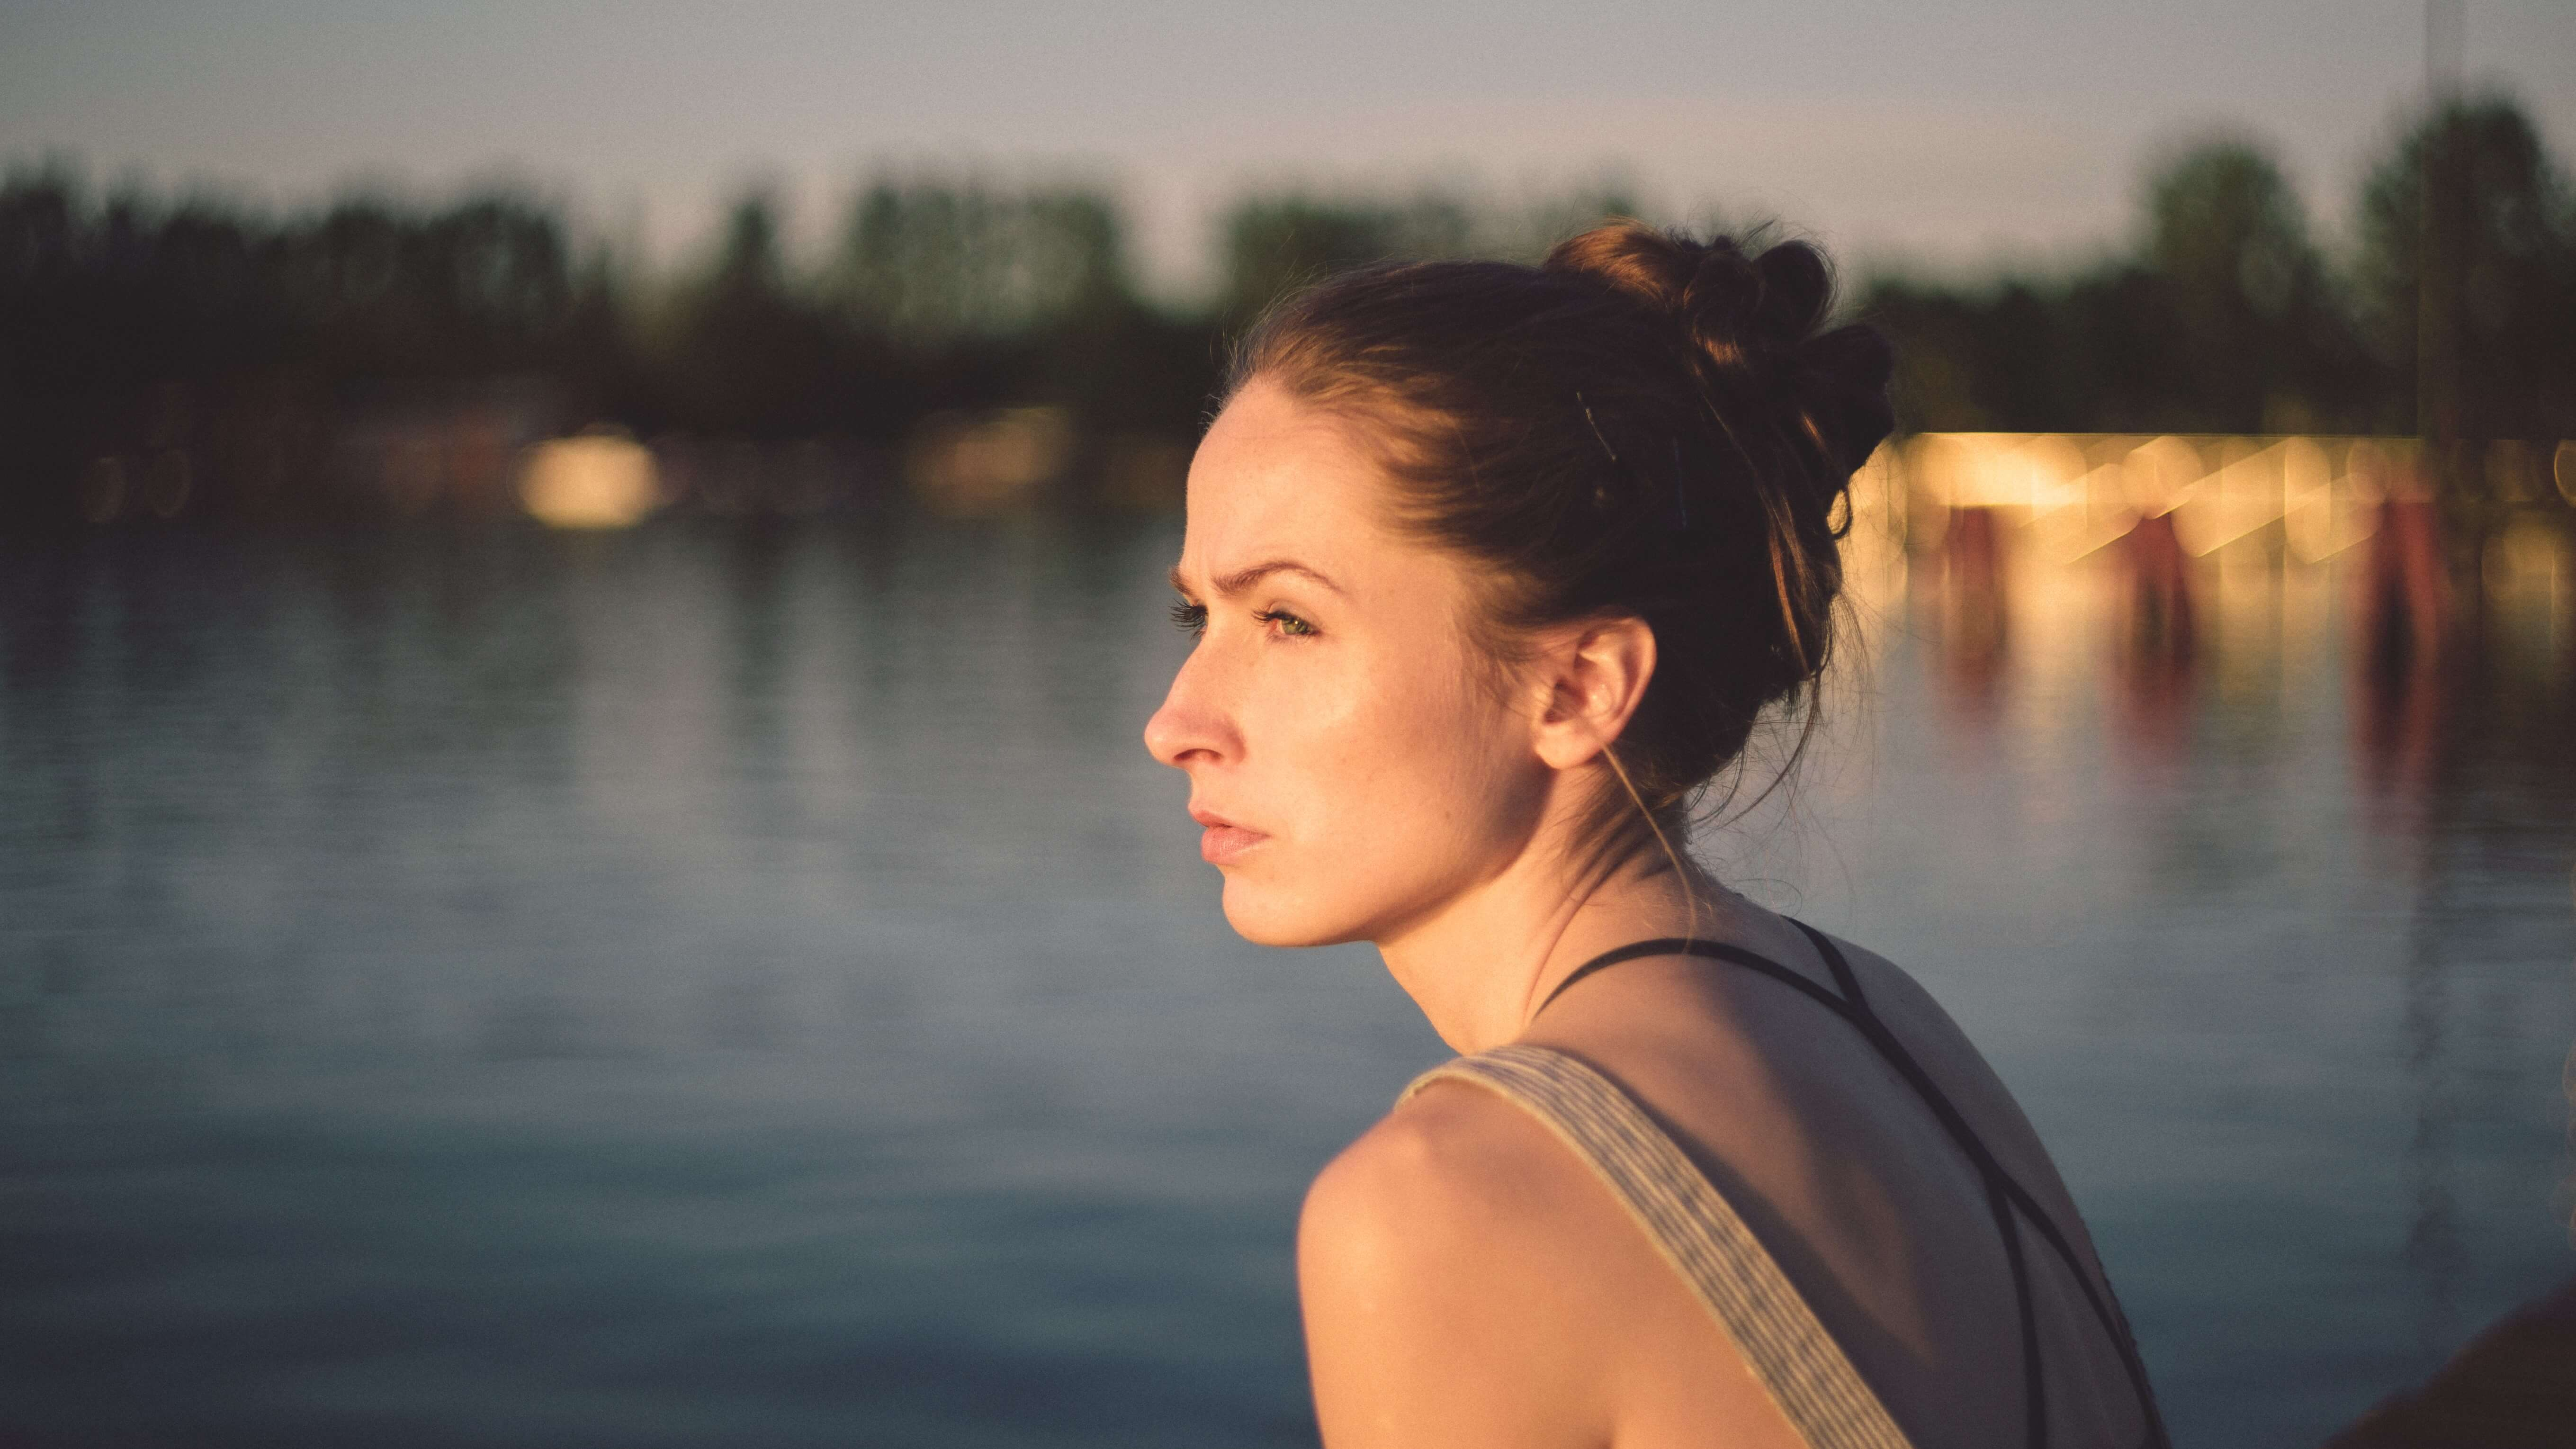 Image description: Young woman looking sadly across a lake.